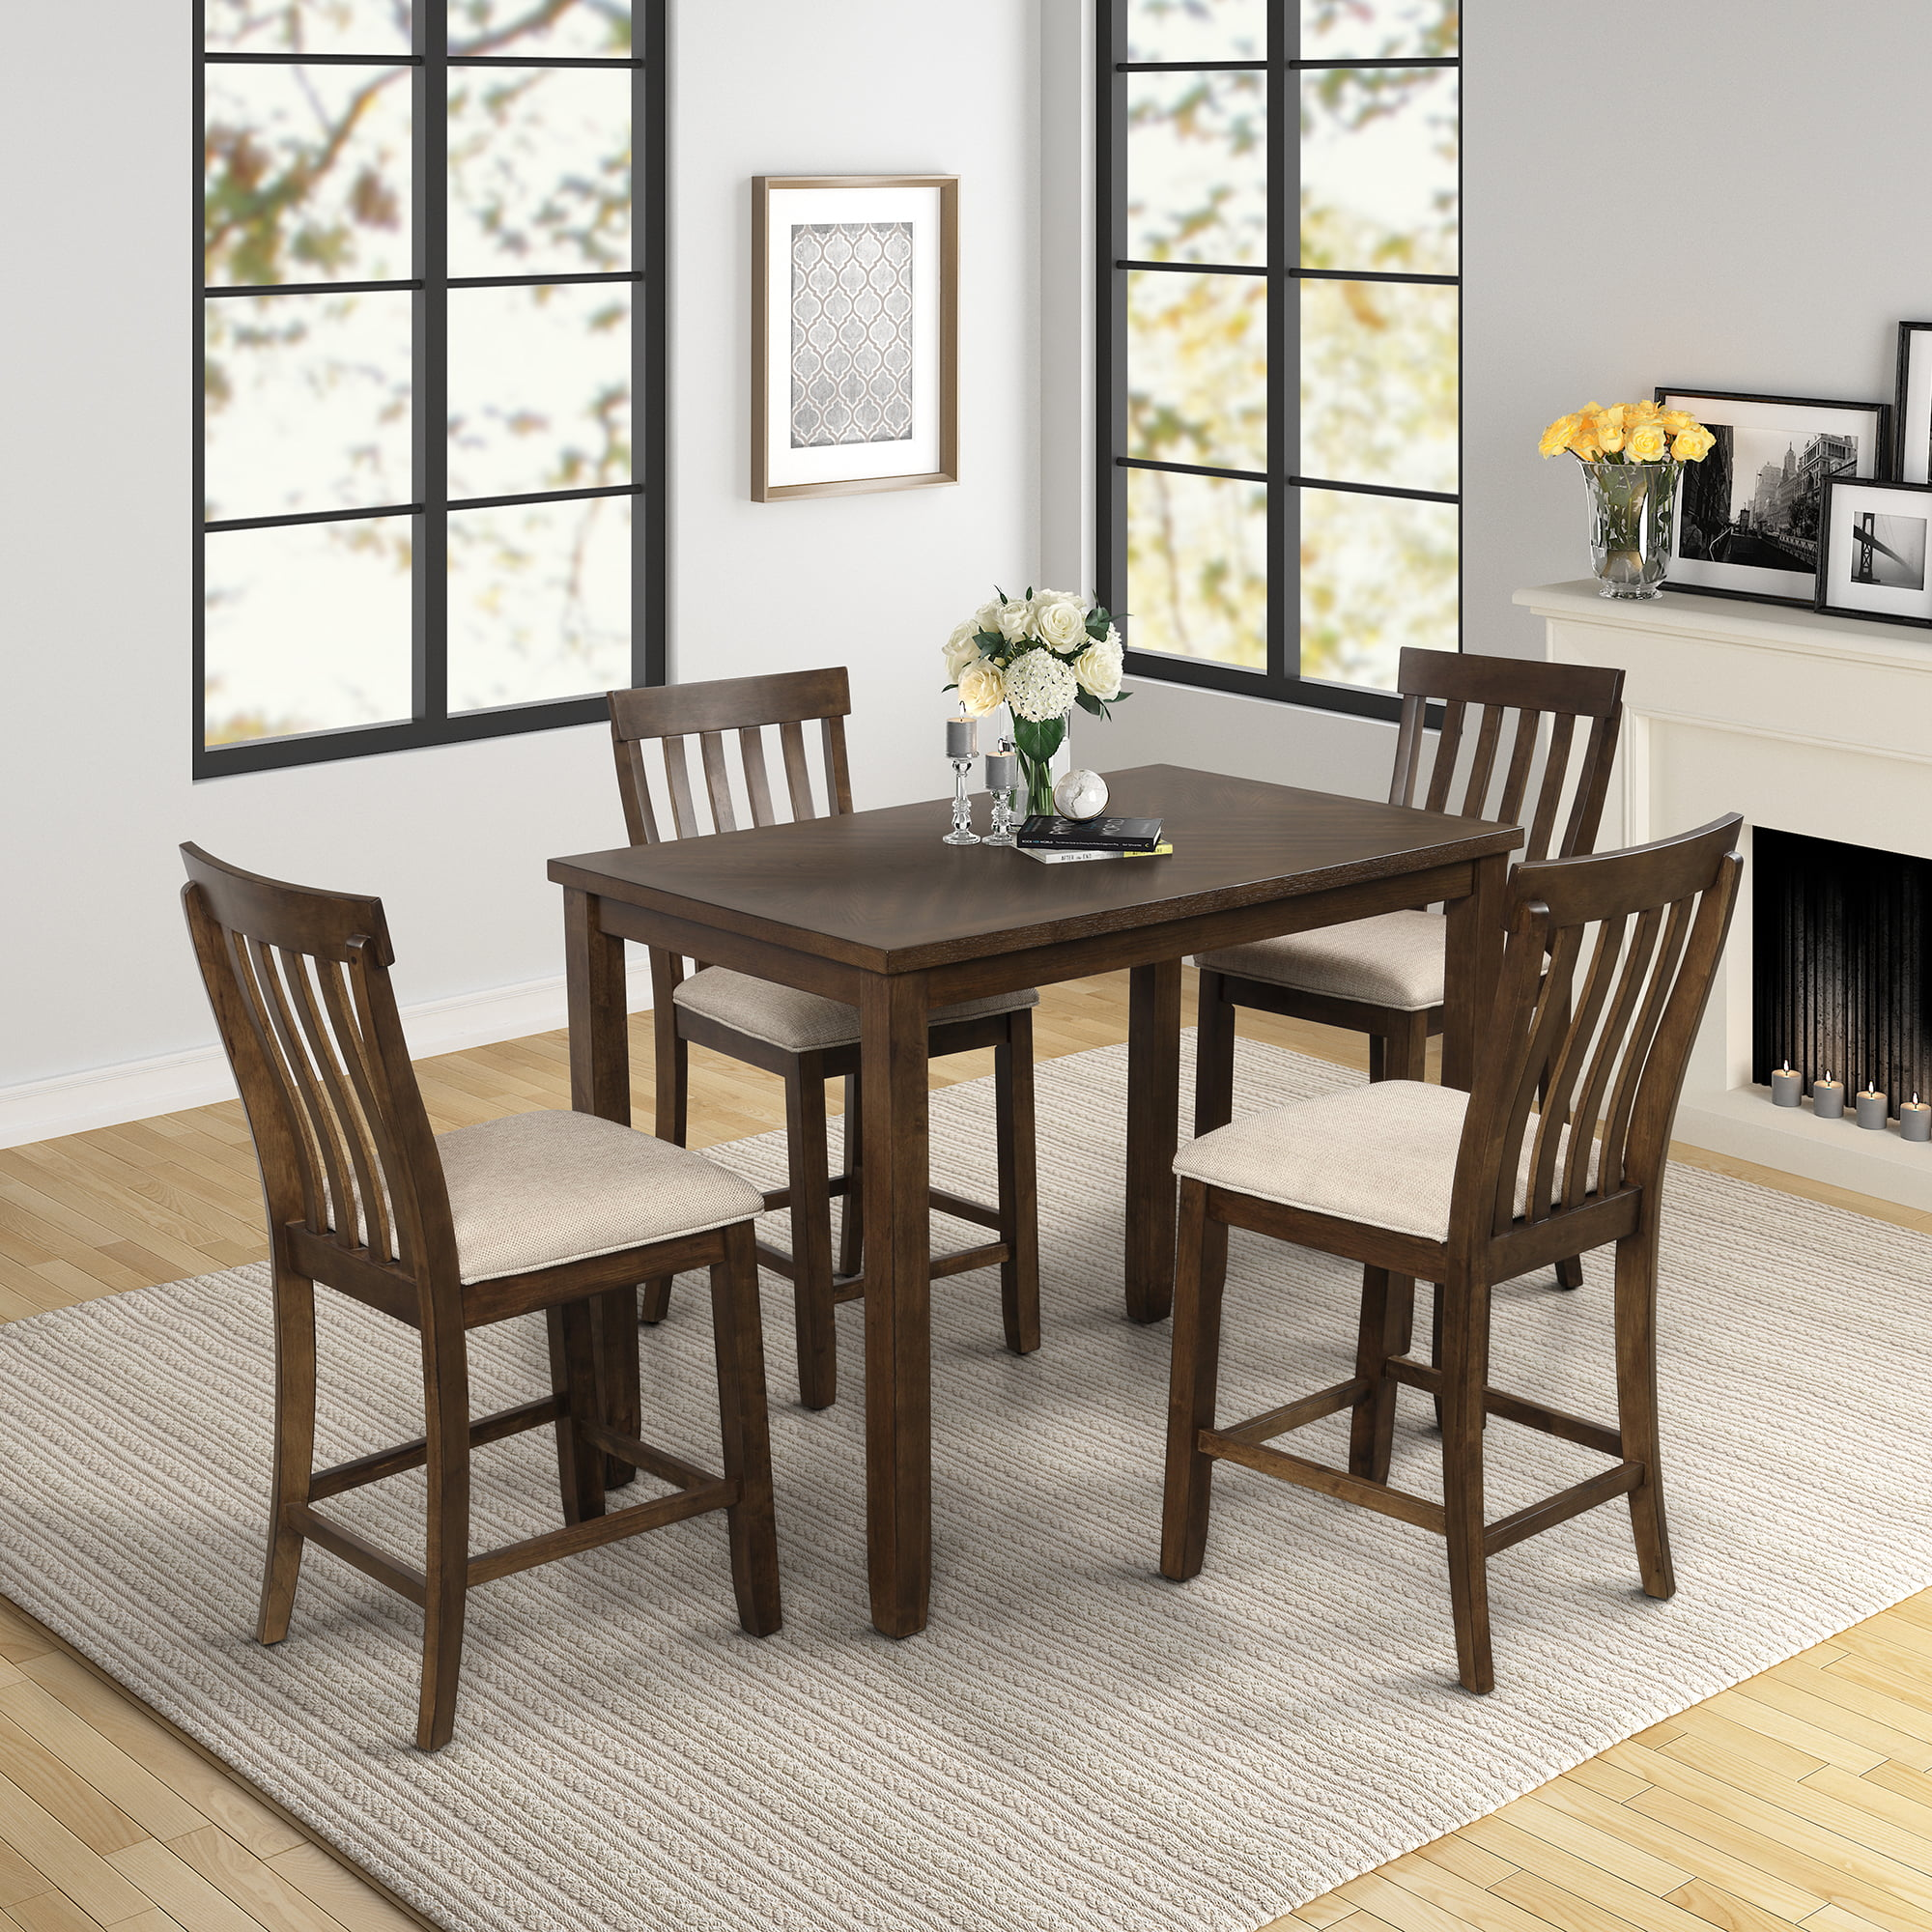 Dining Table Set with 4 Chairs, 5 Piece Wooden Kitchen ...